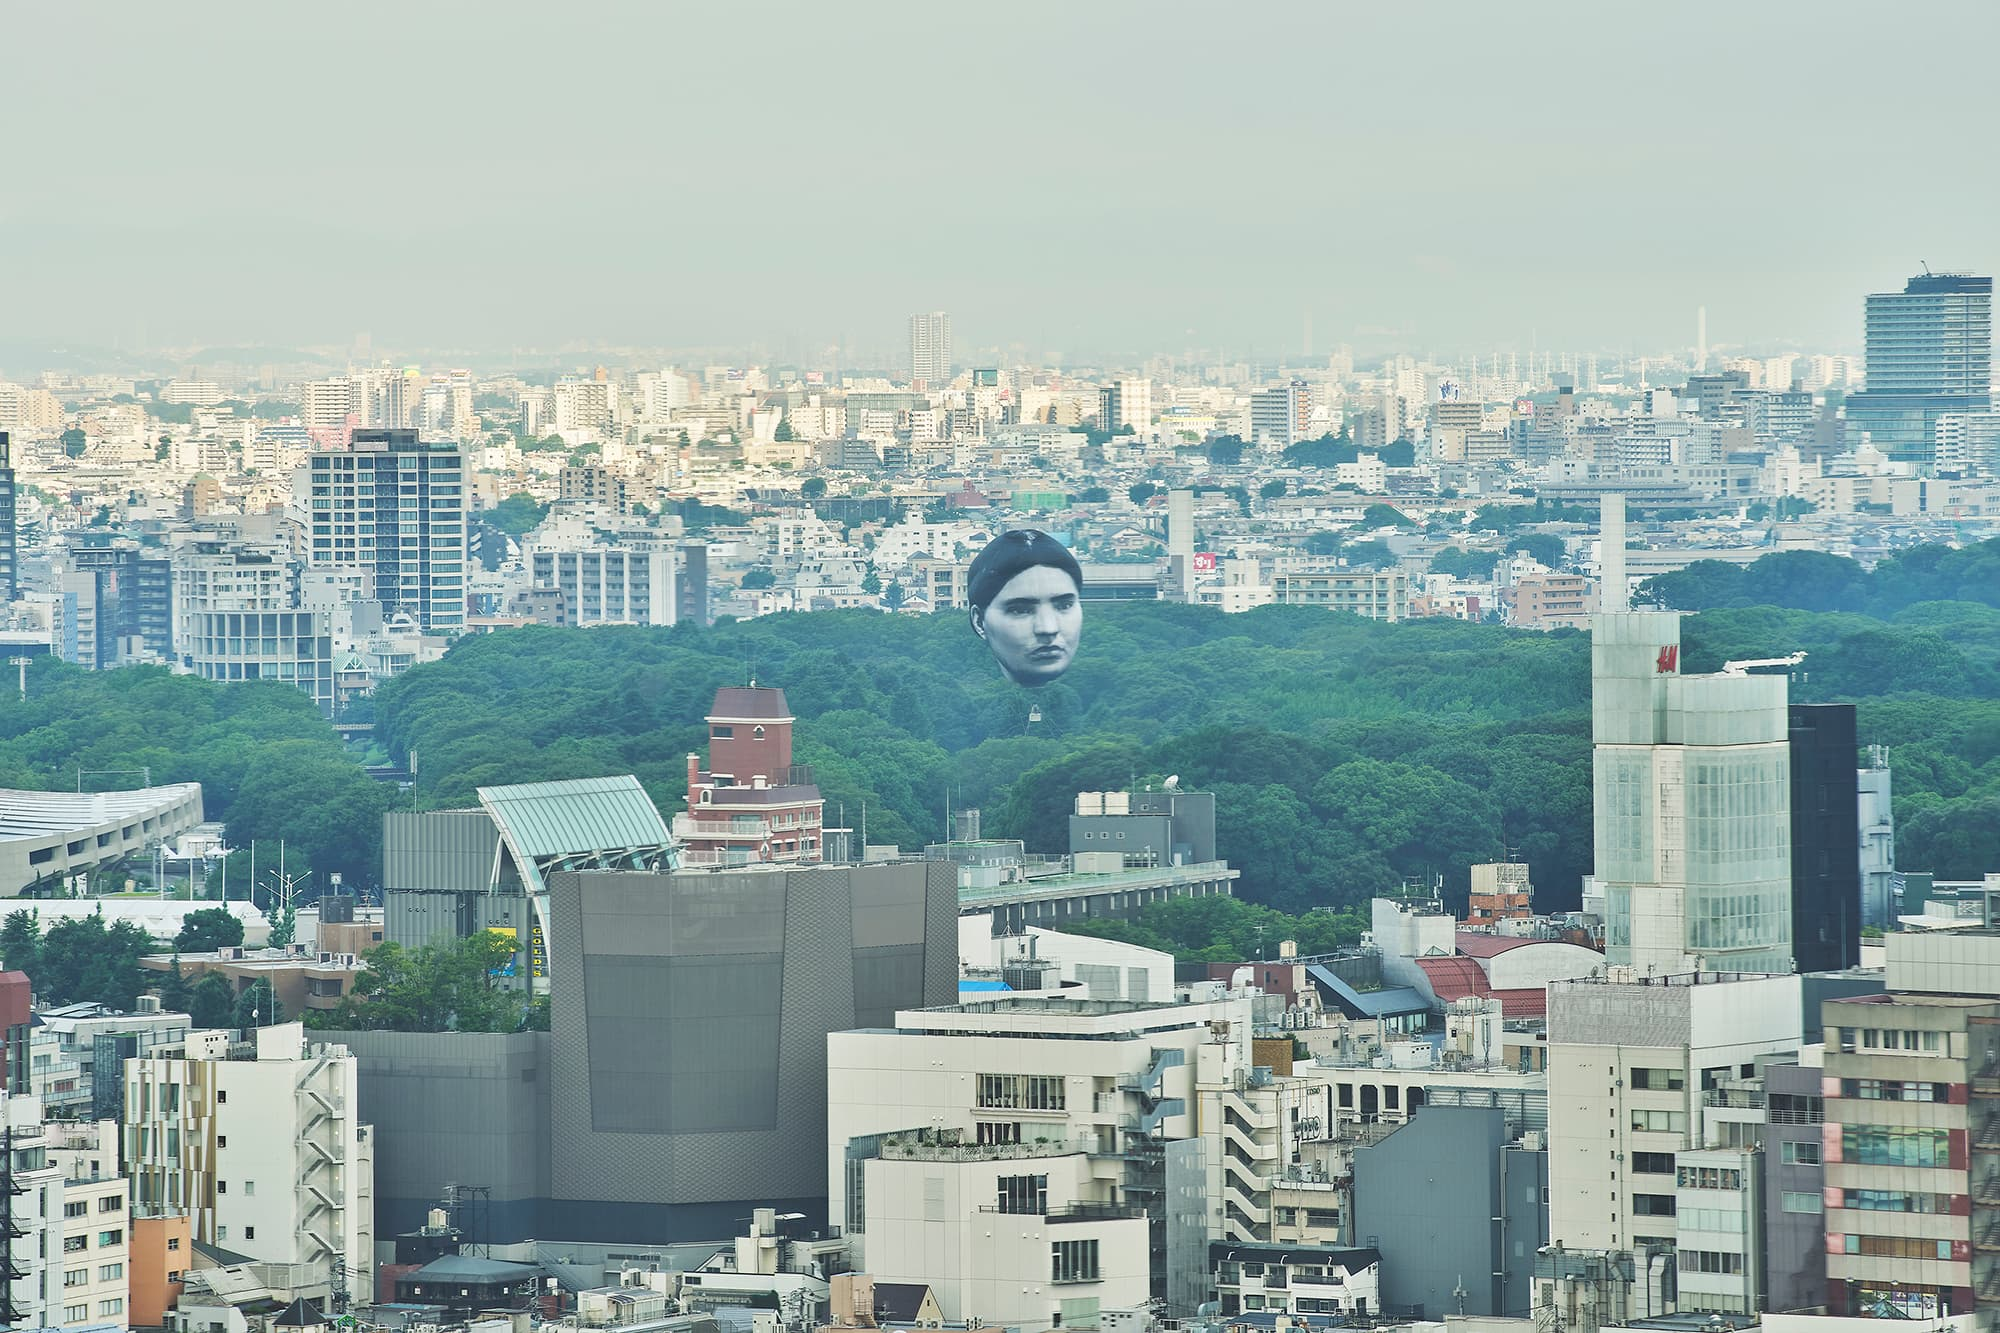 A photo of the Tokyo skyline on a hazy day. In the mid-ground, a sea of green treetops divides the cityscape. Above the trees floats a large balloon face with a black-and-white portrait of an anonymous person. The subject has dark hair parted in the middle, dark eyebrows, and a serious expression.